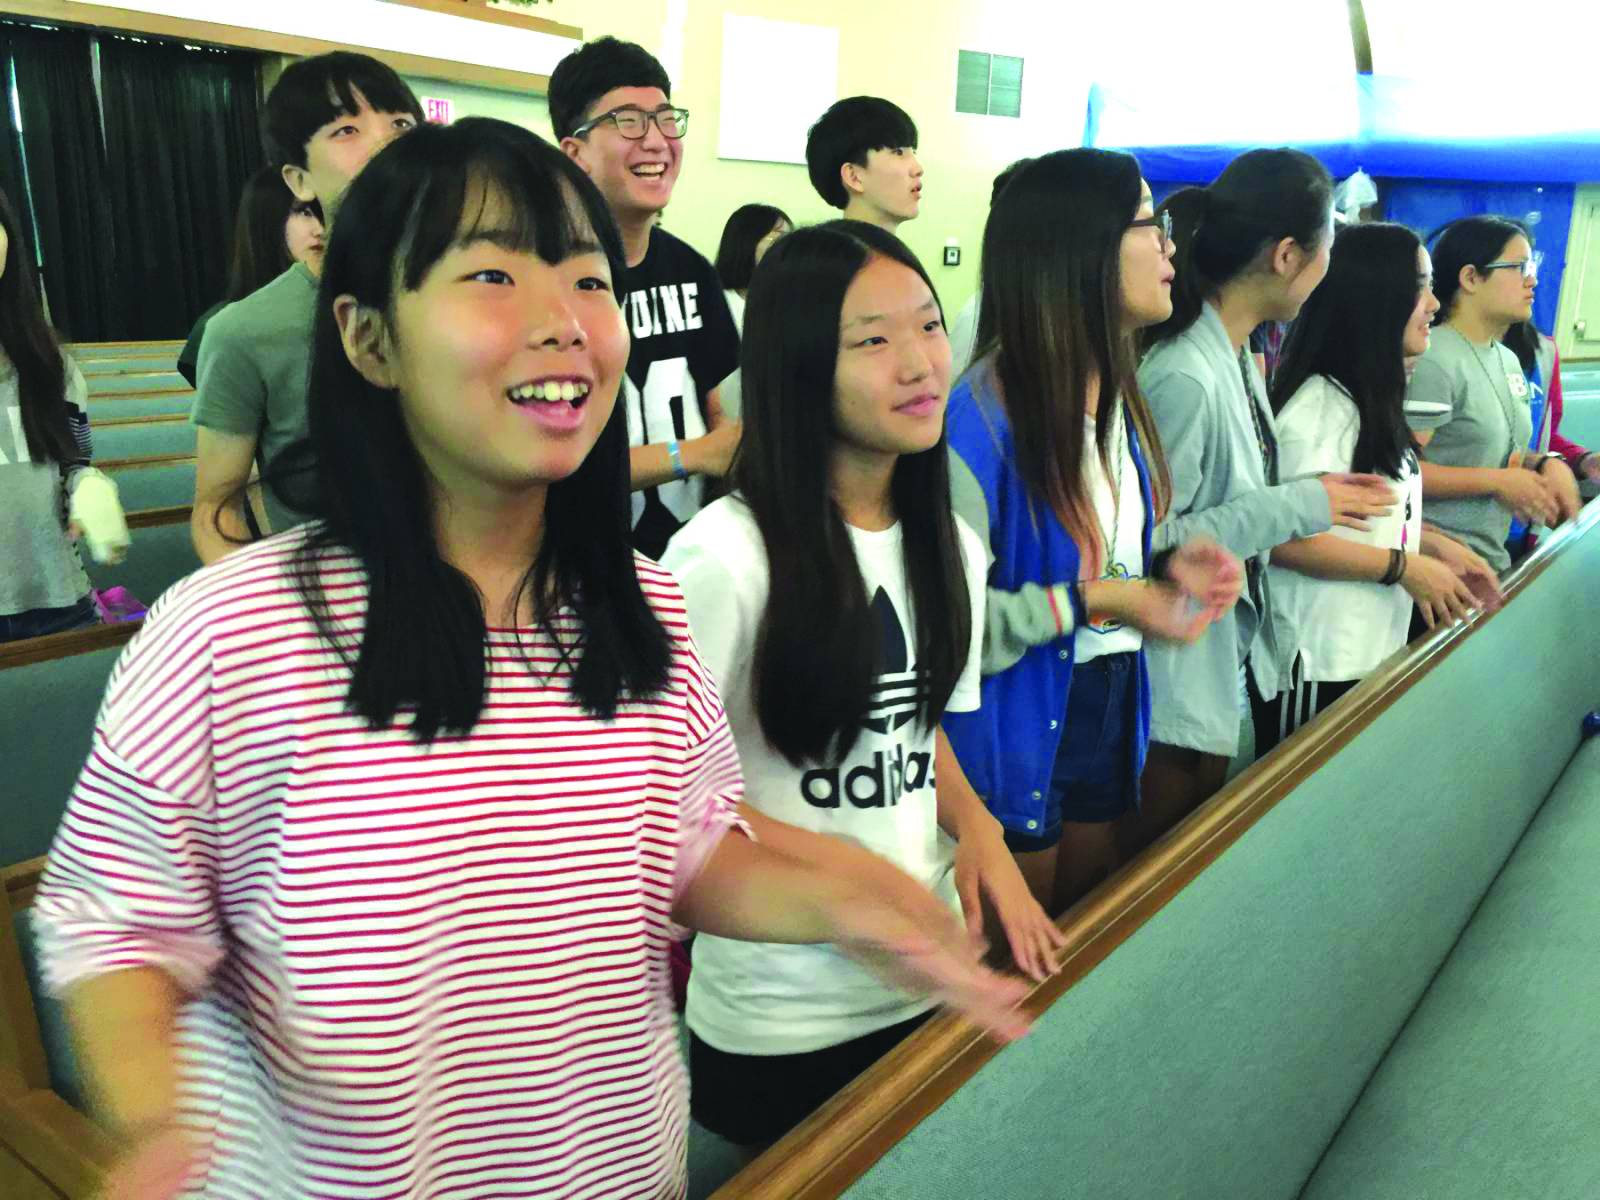 Camp USA participants enjoy a time of worship during Vacation Bible School at Alpine First Baptist Church. The students from South Korea spent a week in central Louisiana before finishing their trip in Ponchatoula.